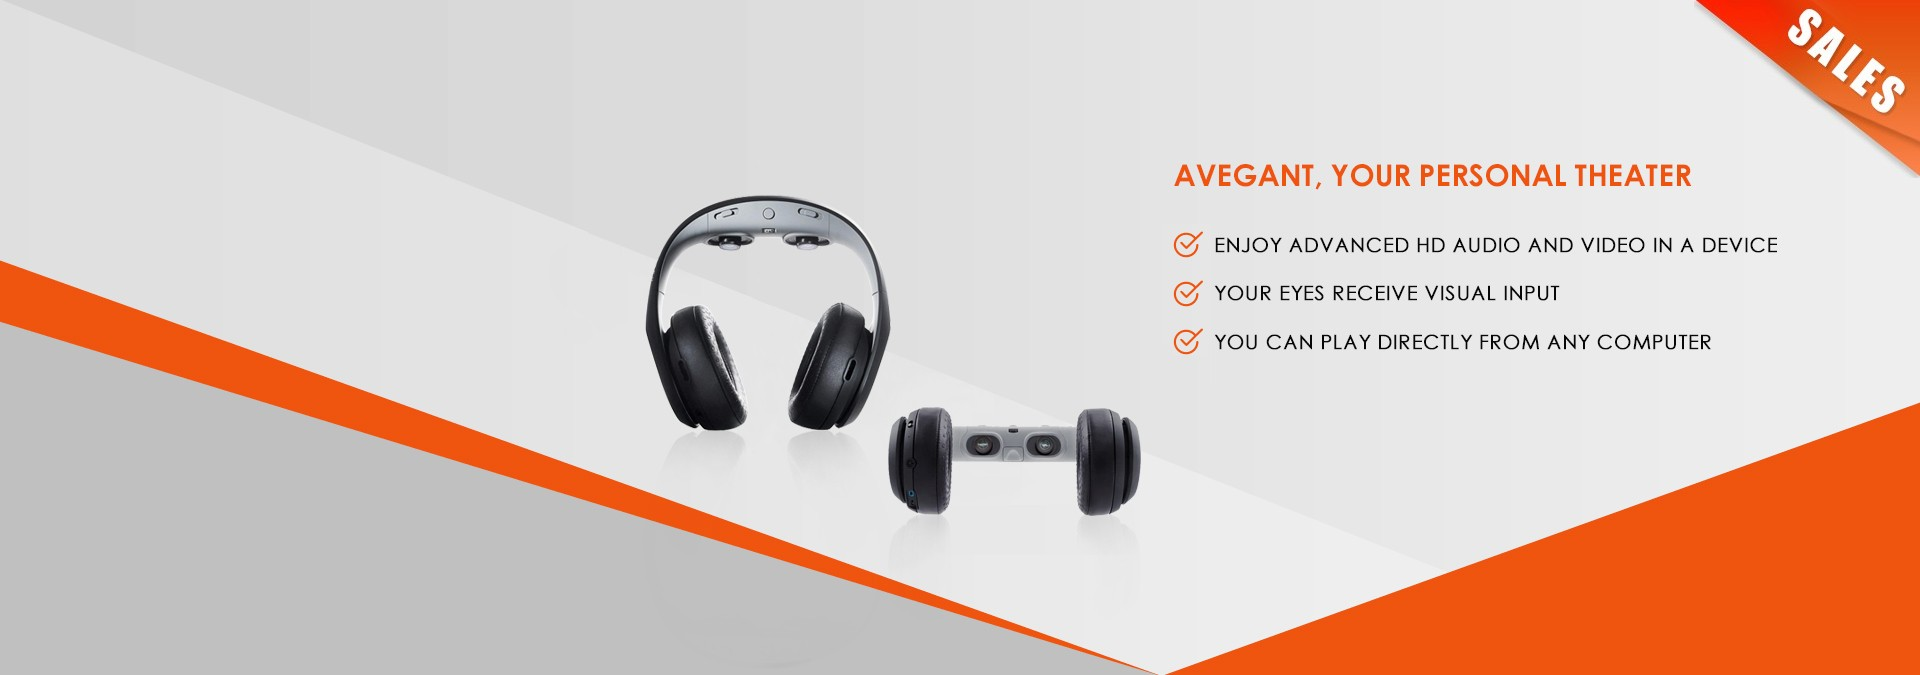 Avegant, Your Personal Theater